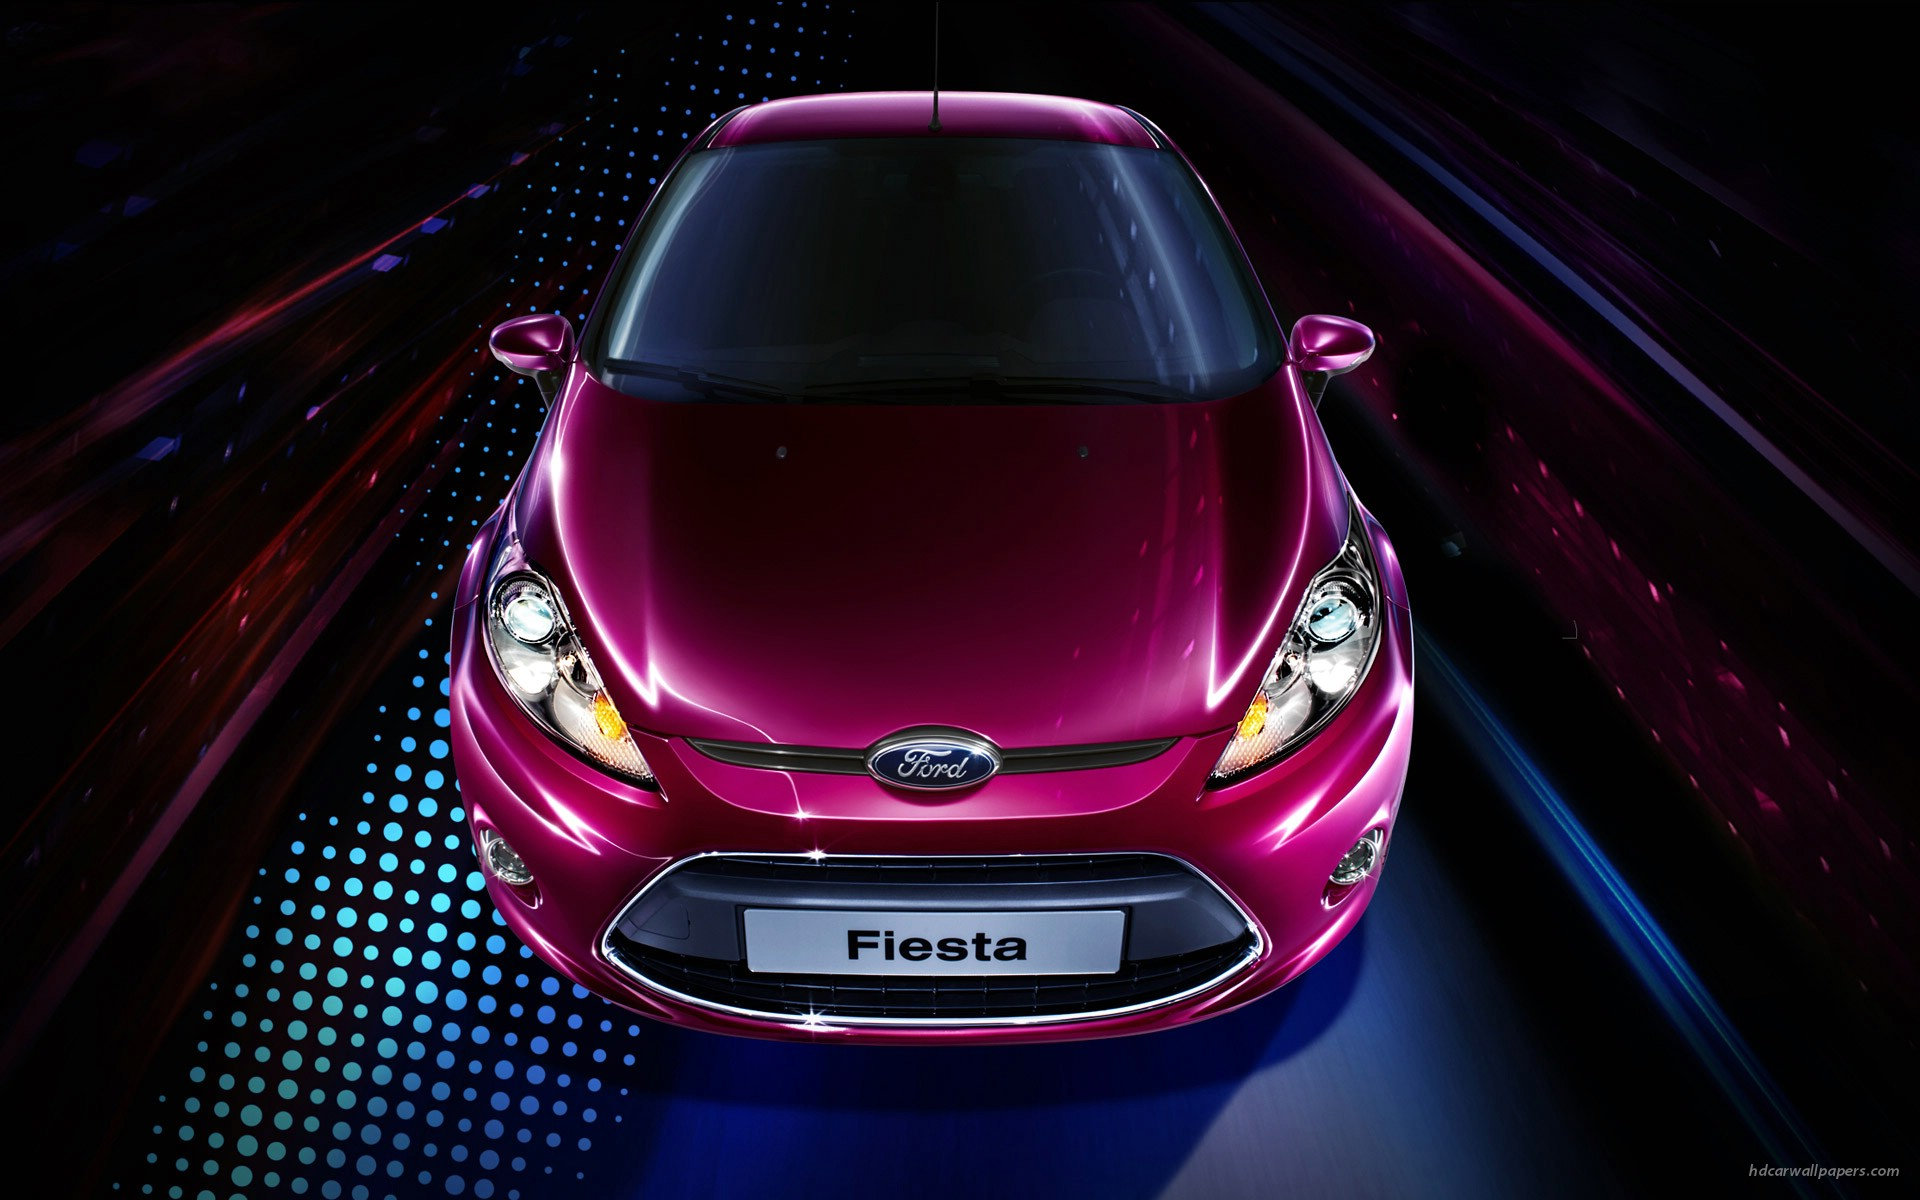 2011 Ford Fiesta 207.18 Kb